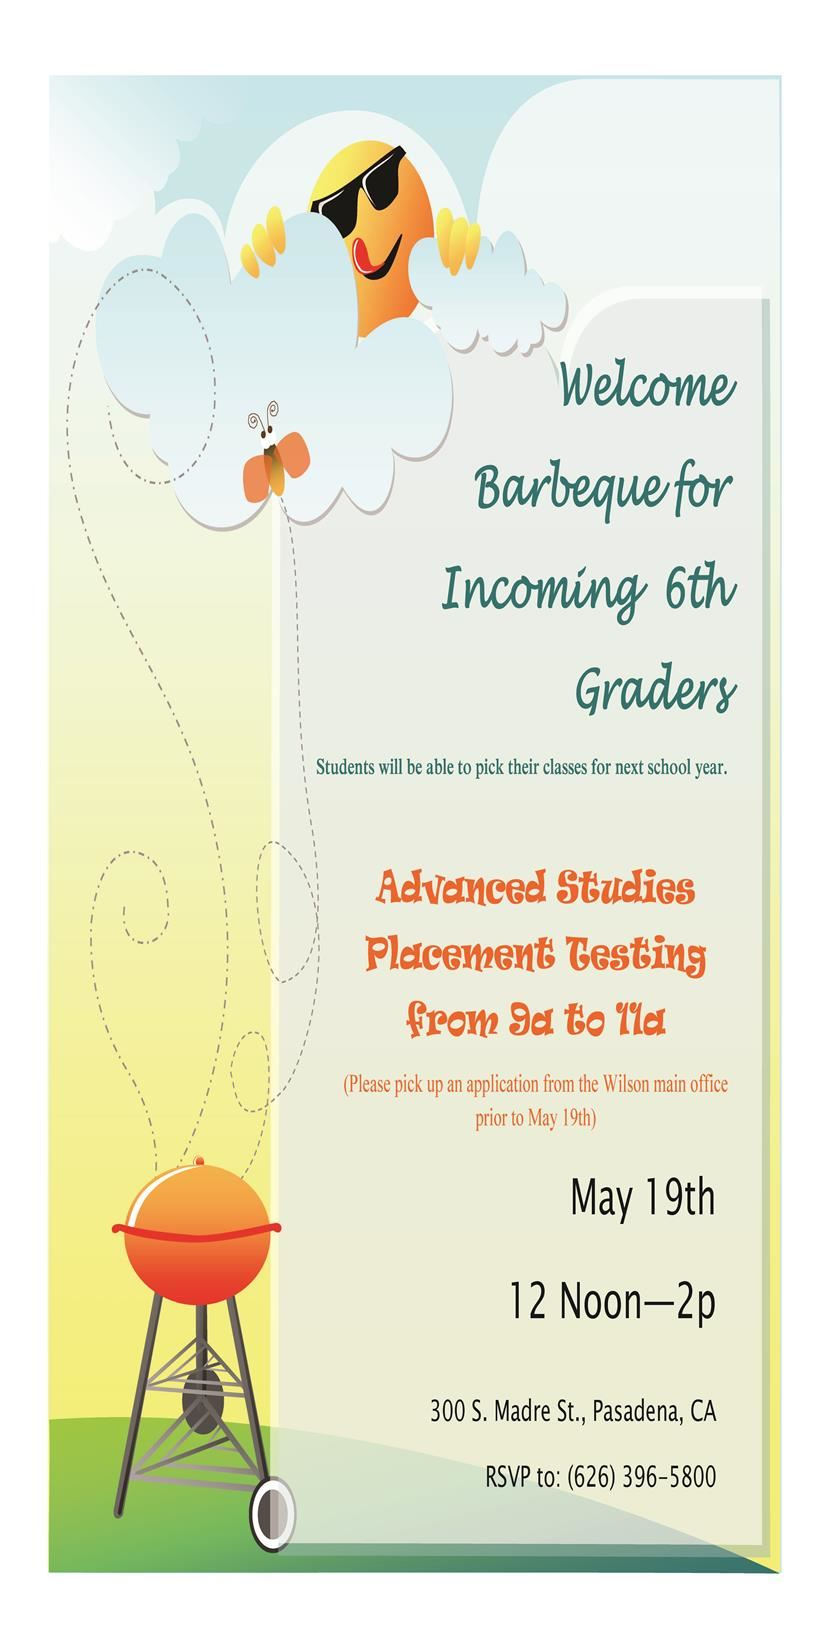 May 19th: Welcome Barbeque for Incoming 6th Graders